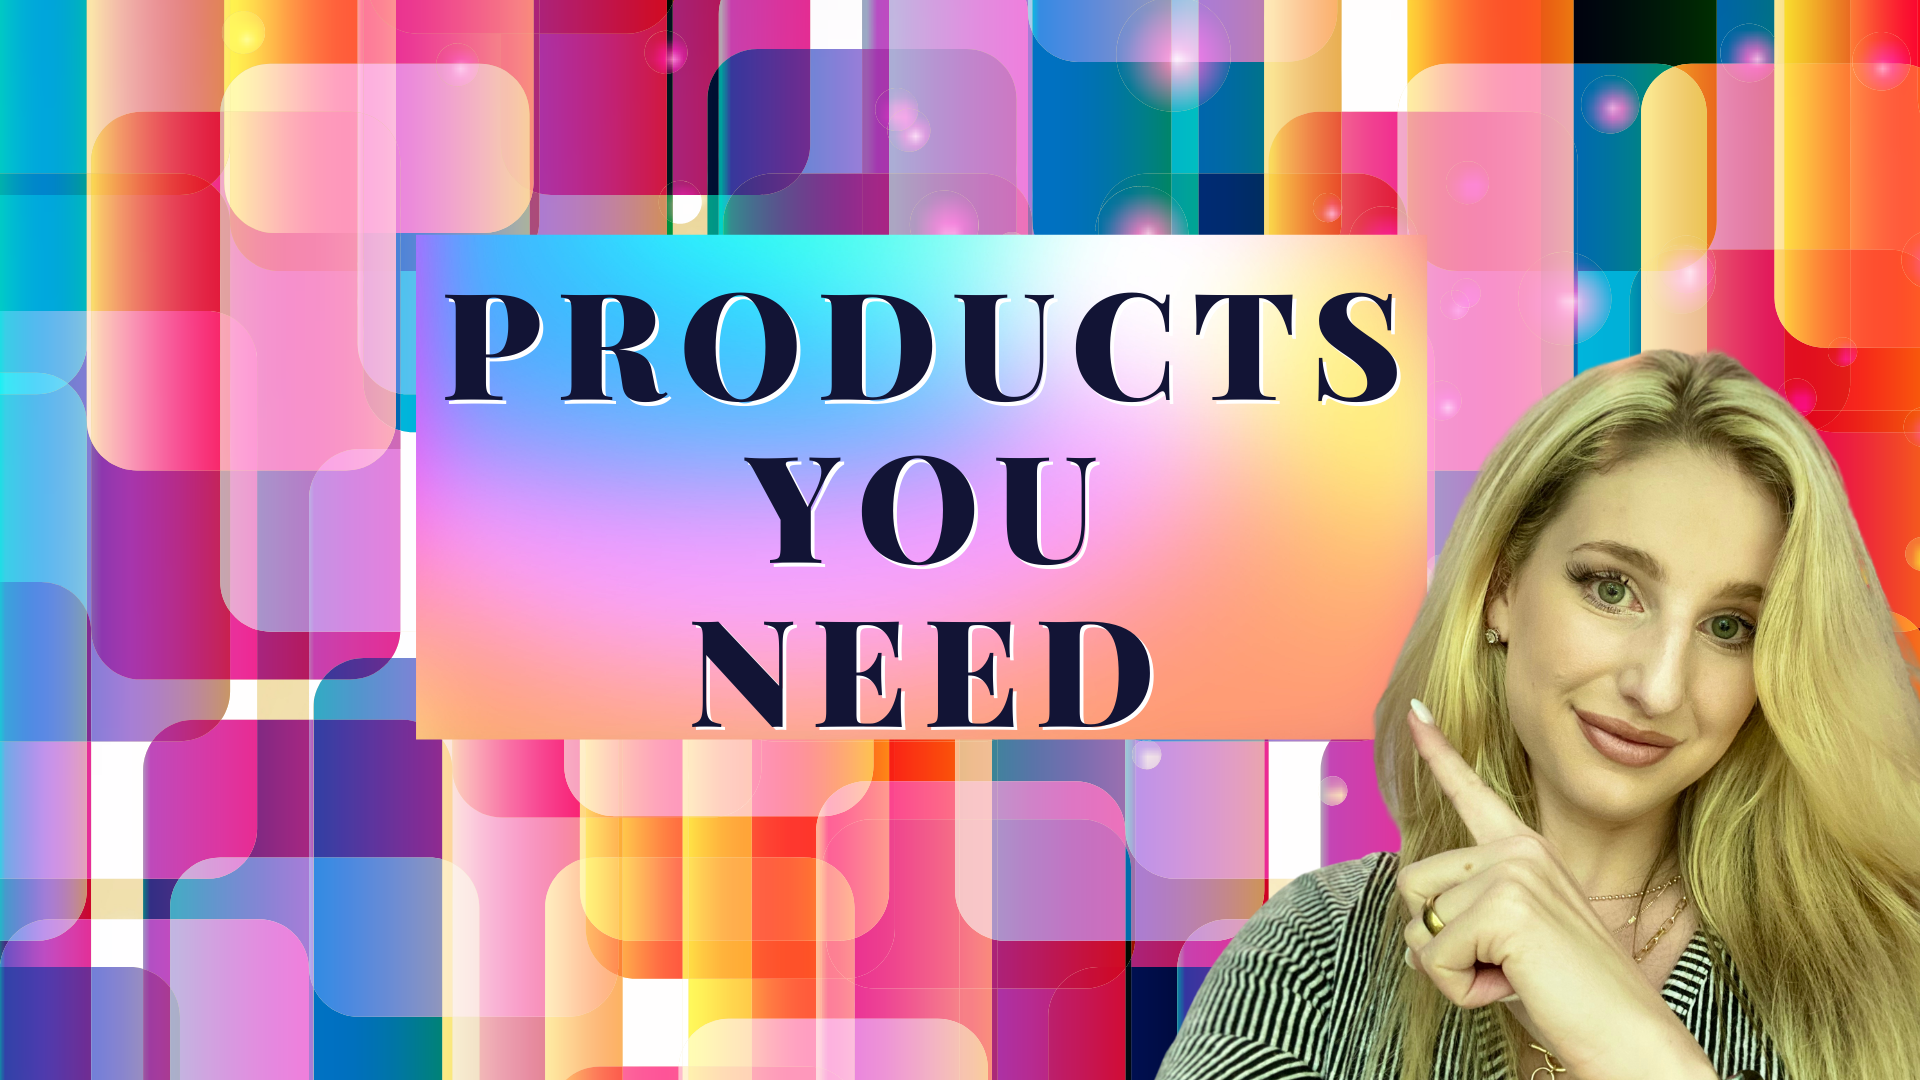 What Products and Equipment You Need in 2021 as a Business Owner